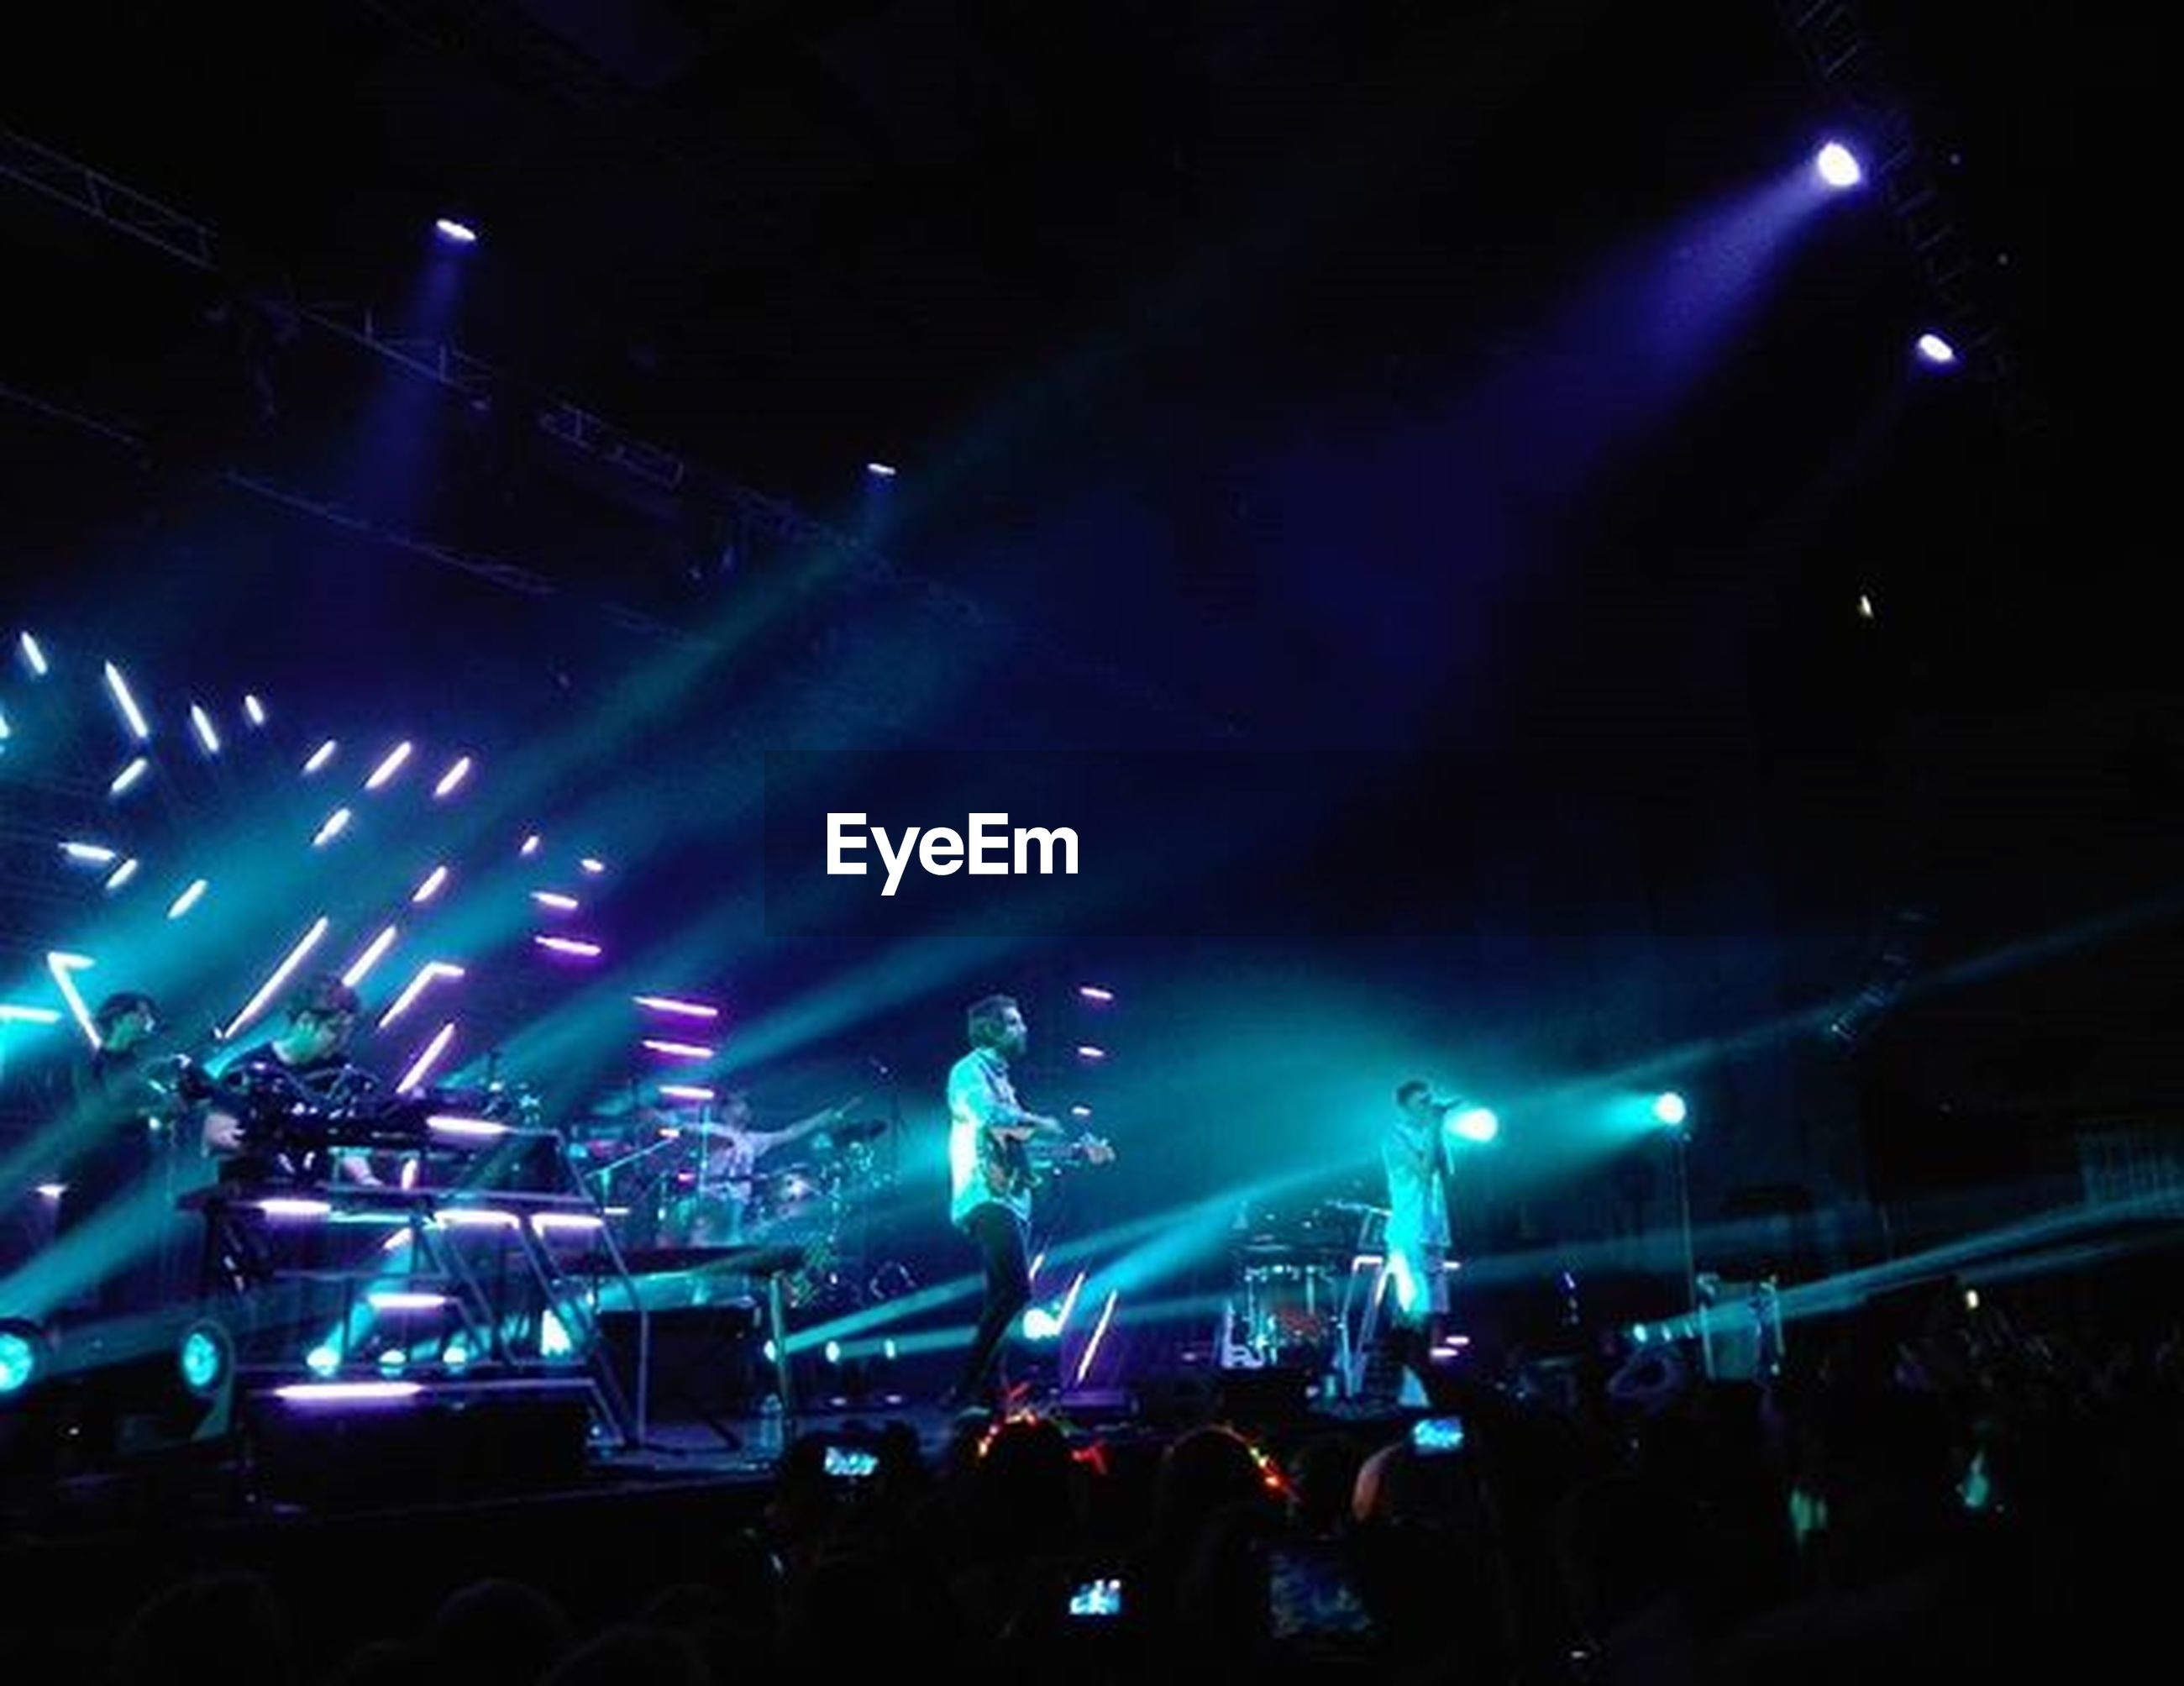 illuminated, night, large group of people, crowd, nightlife, lifestyles, music, arts culture and entertainment, person, men, leisure activity, event, enjoyment, performance, music festival, popular music concert, concert, lighting equipment